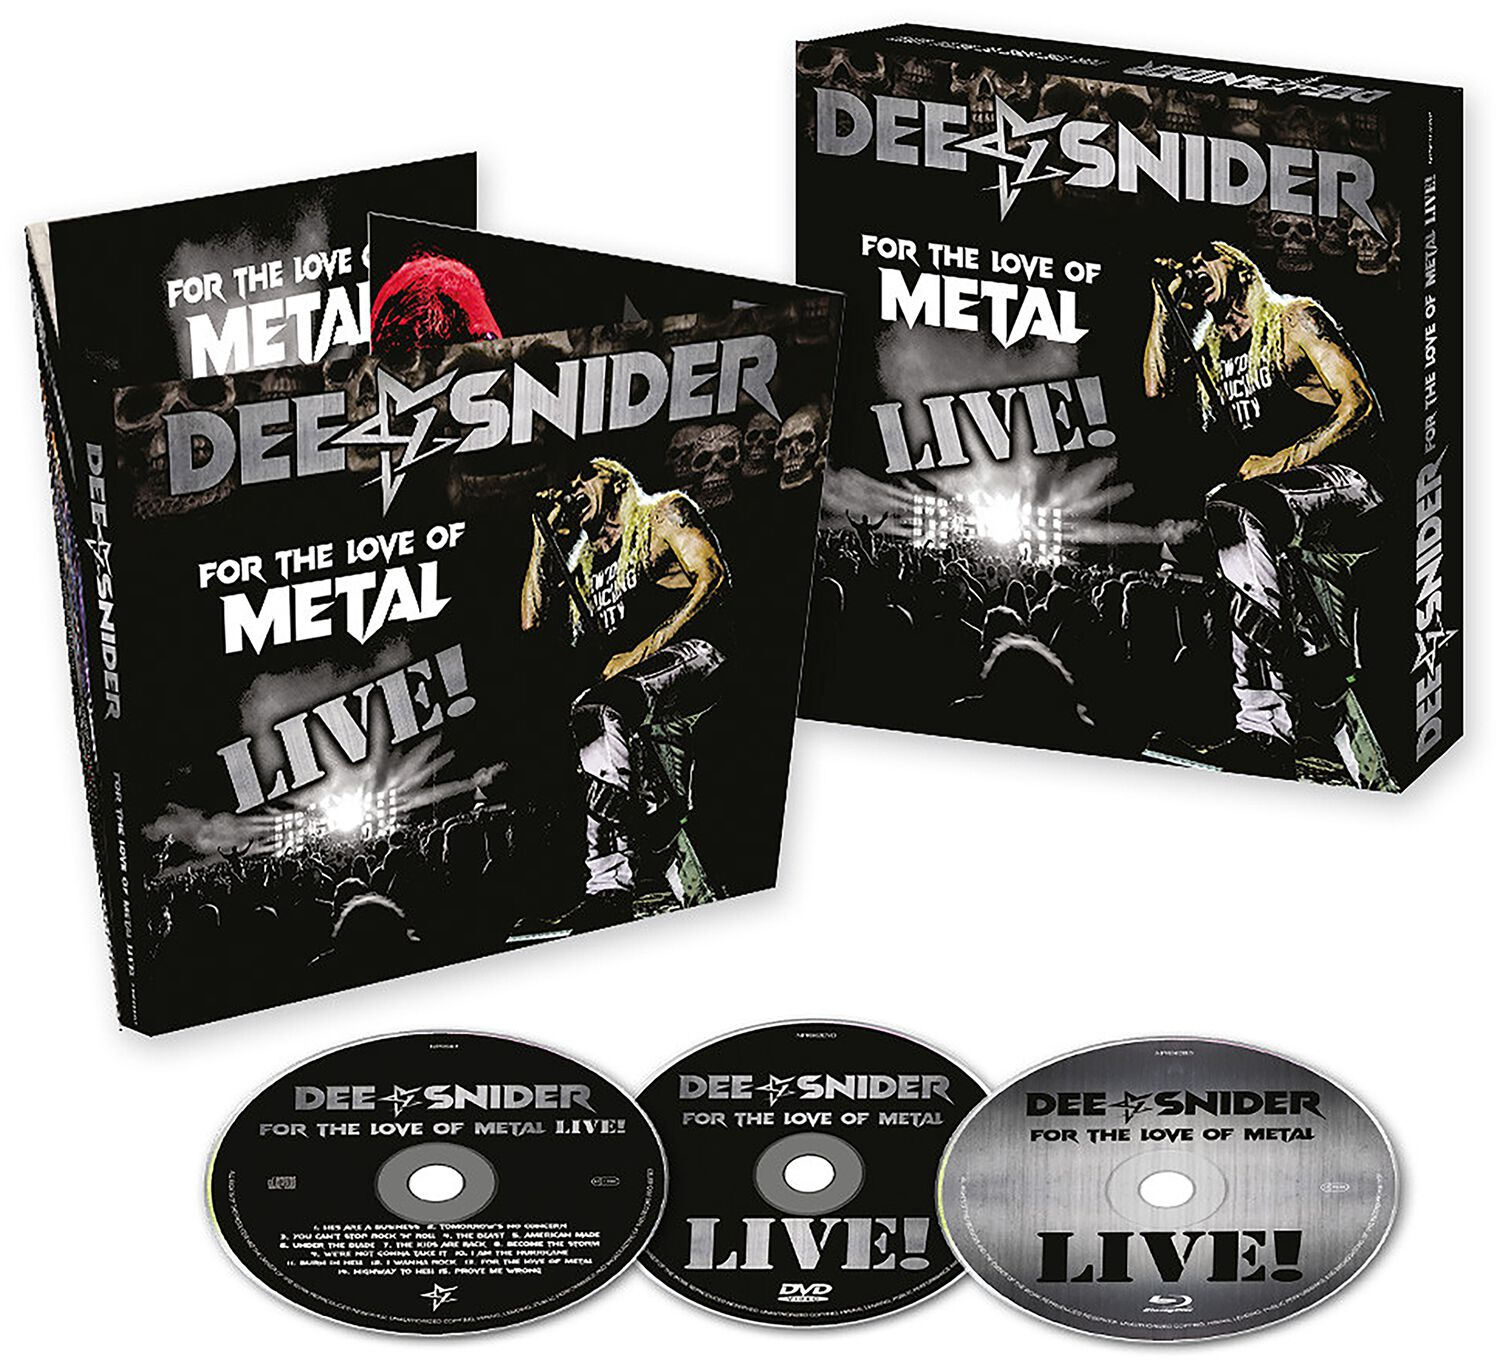 Image of Snider, Dee For the love of Metal - Live CD & DVD & Blu-ray Standard